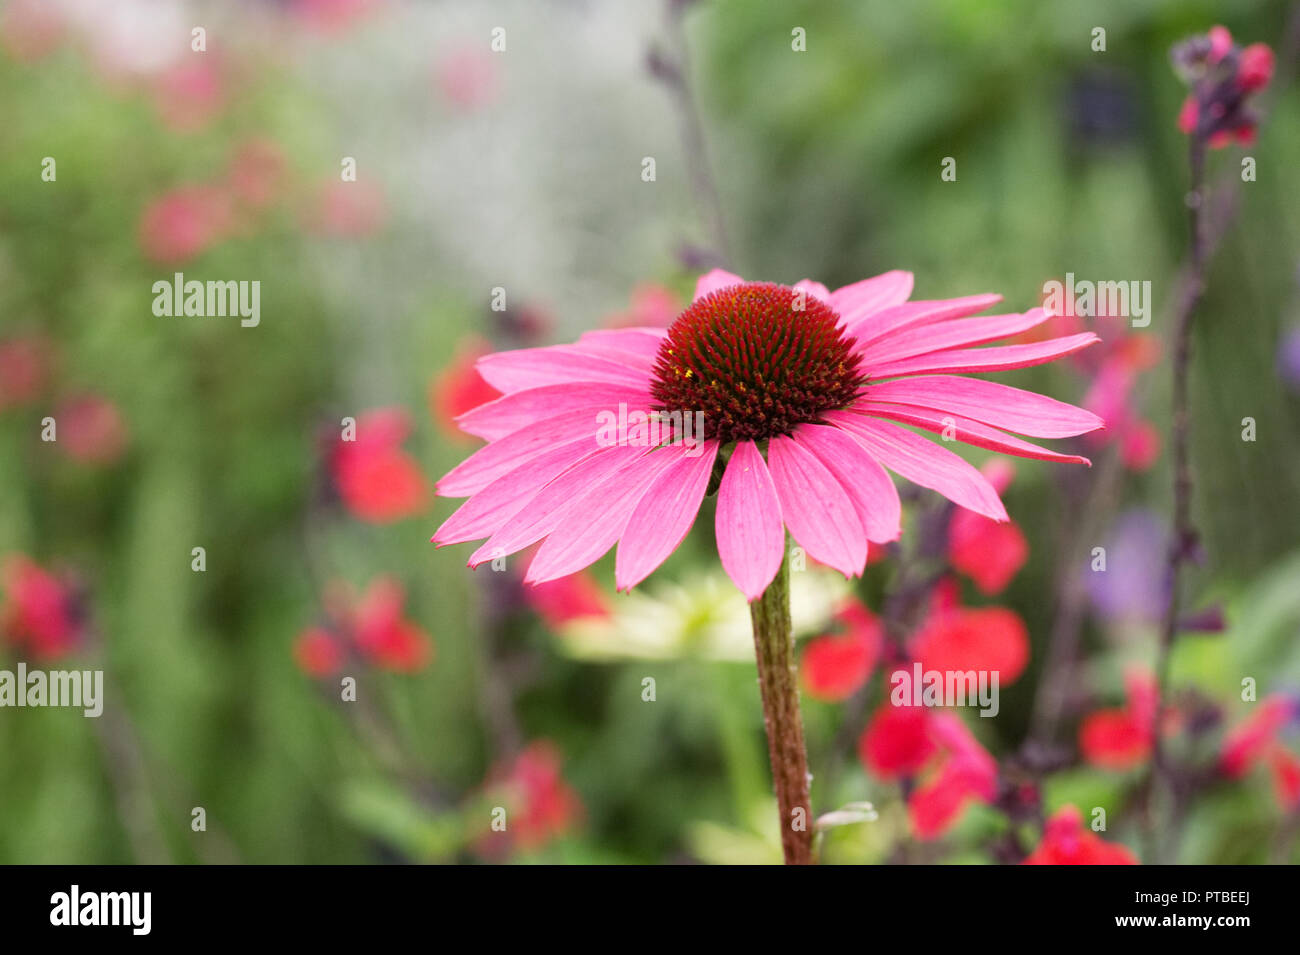 Echinacea purpurea and Salvia flowers. - Stock Image